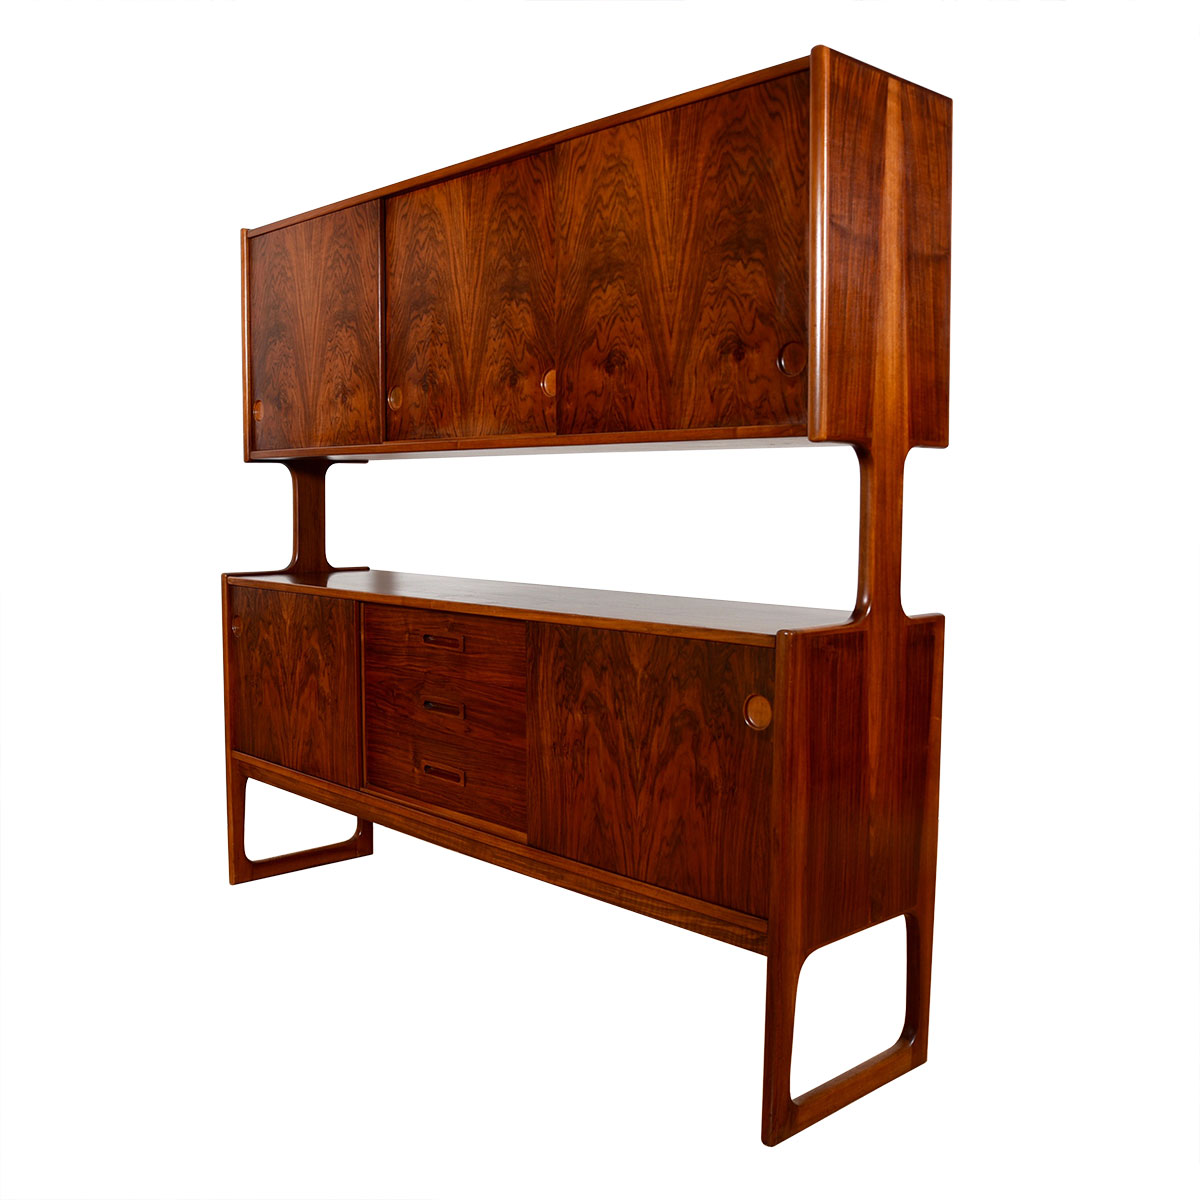 The Double-Decker >> Danish Modern Rosewood Highboard / Room Divider